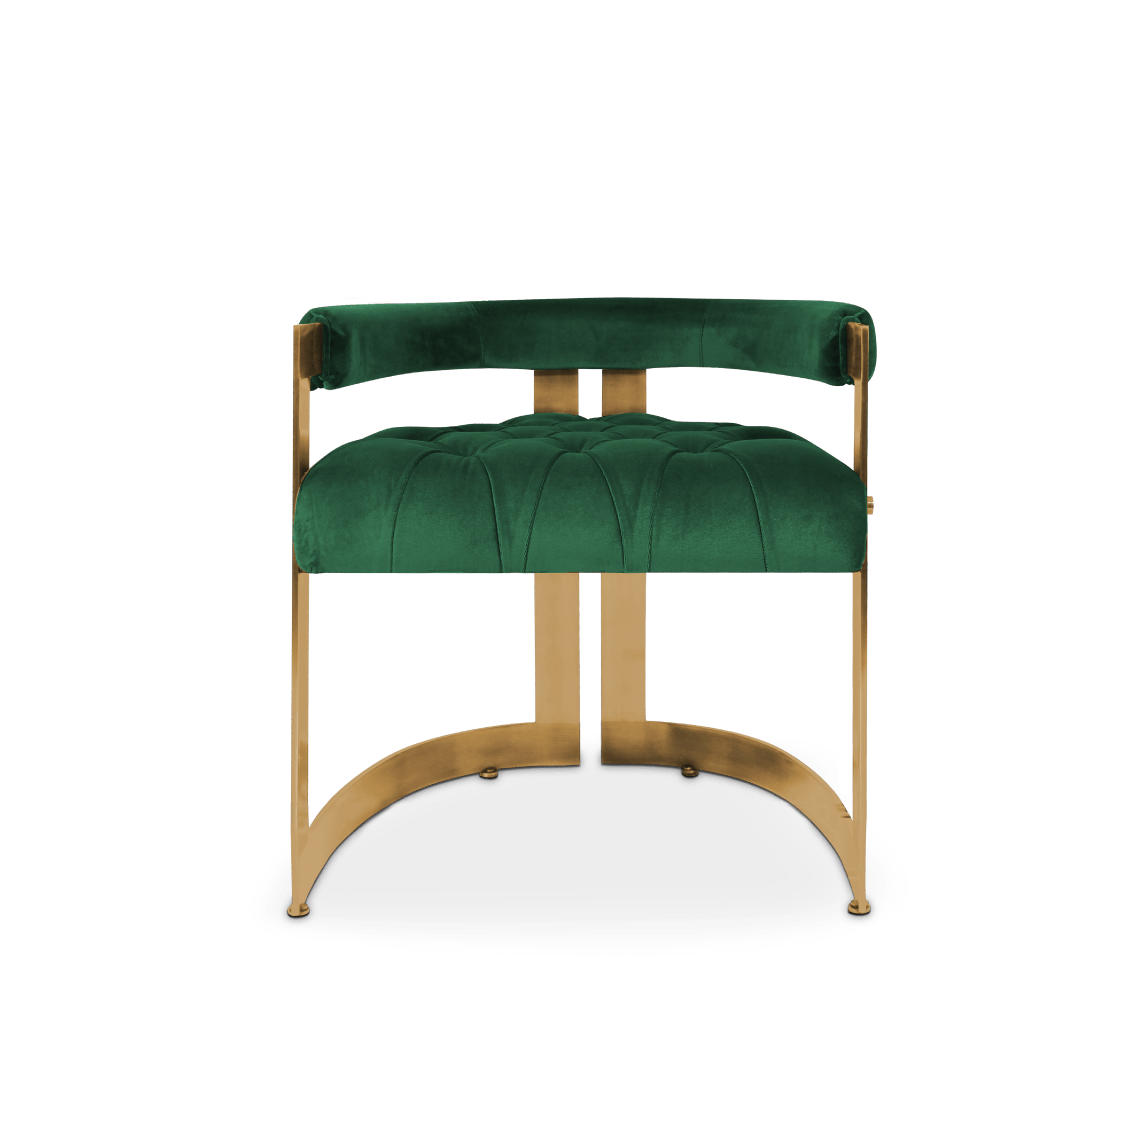 Winfrey Mid-Century Modern Dining Chair in classic green cotton velvet